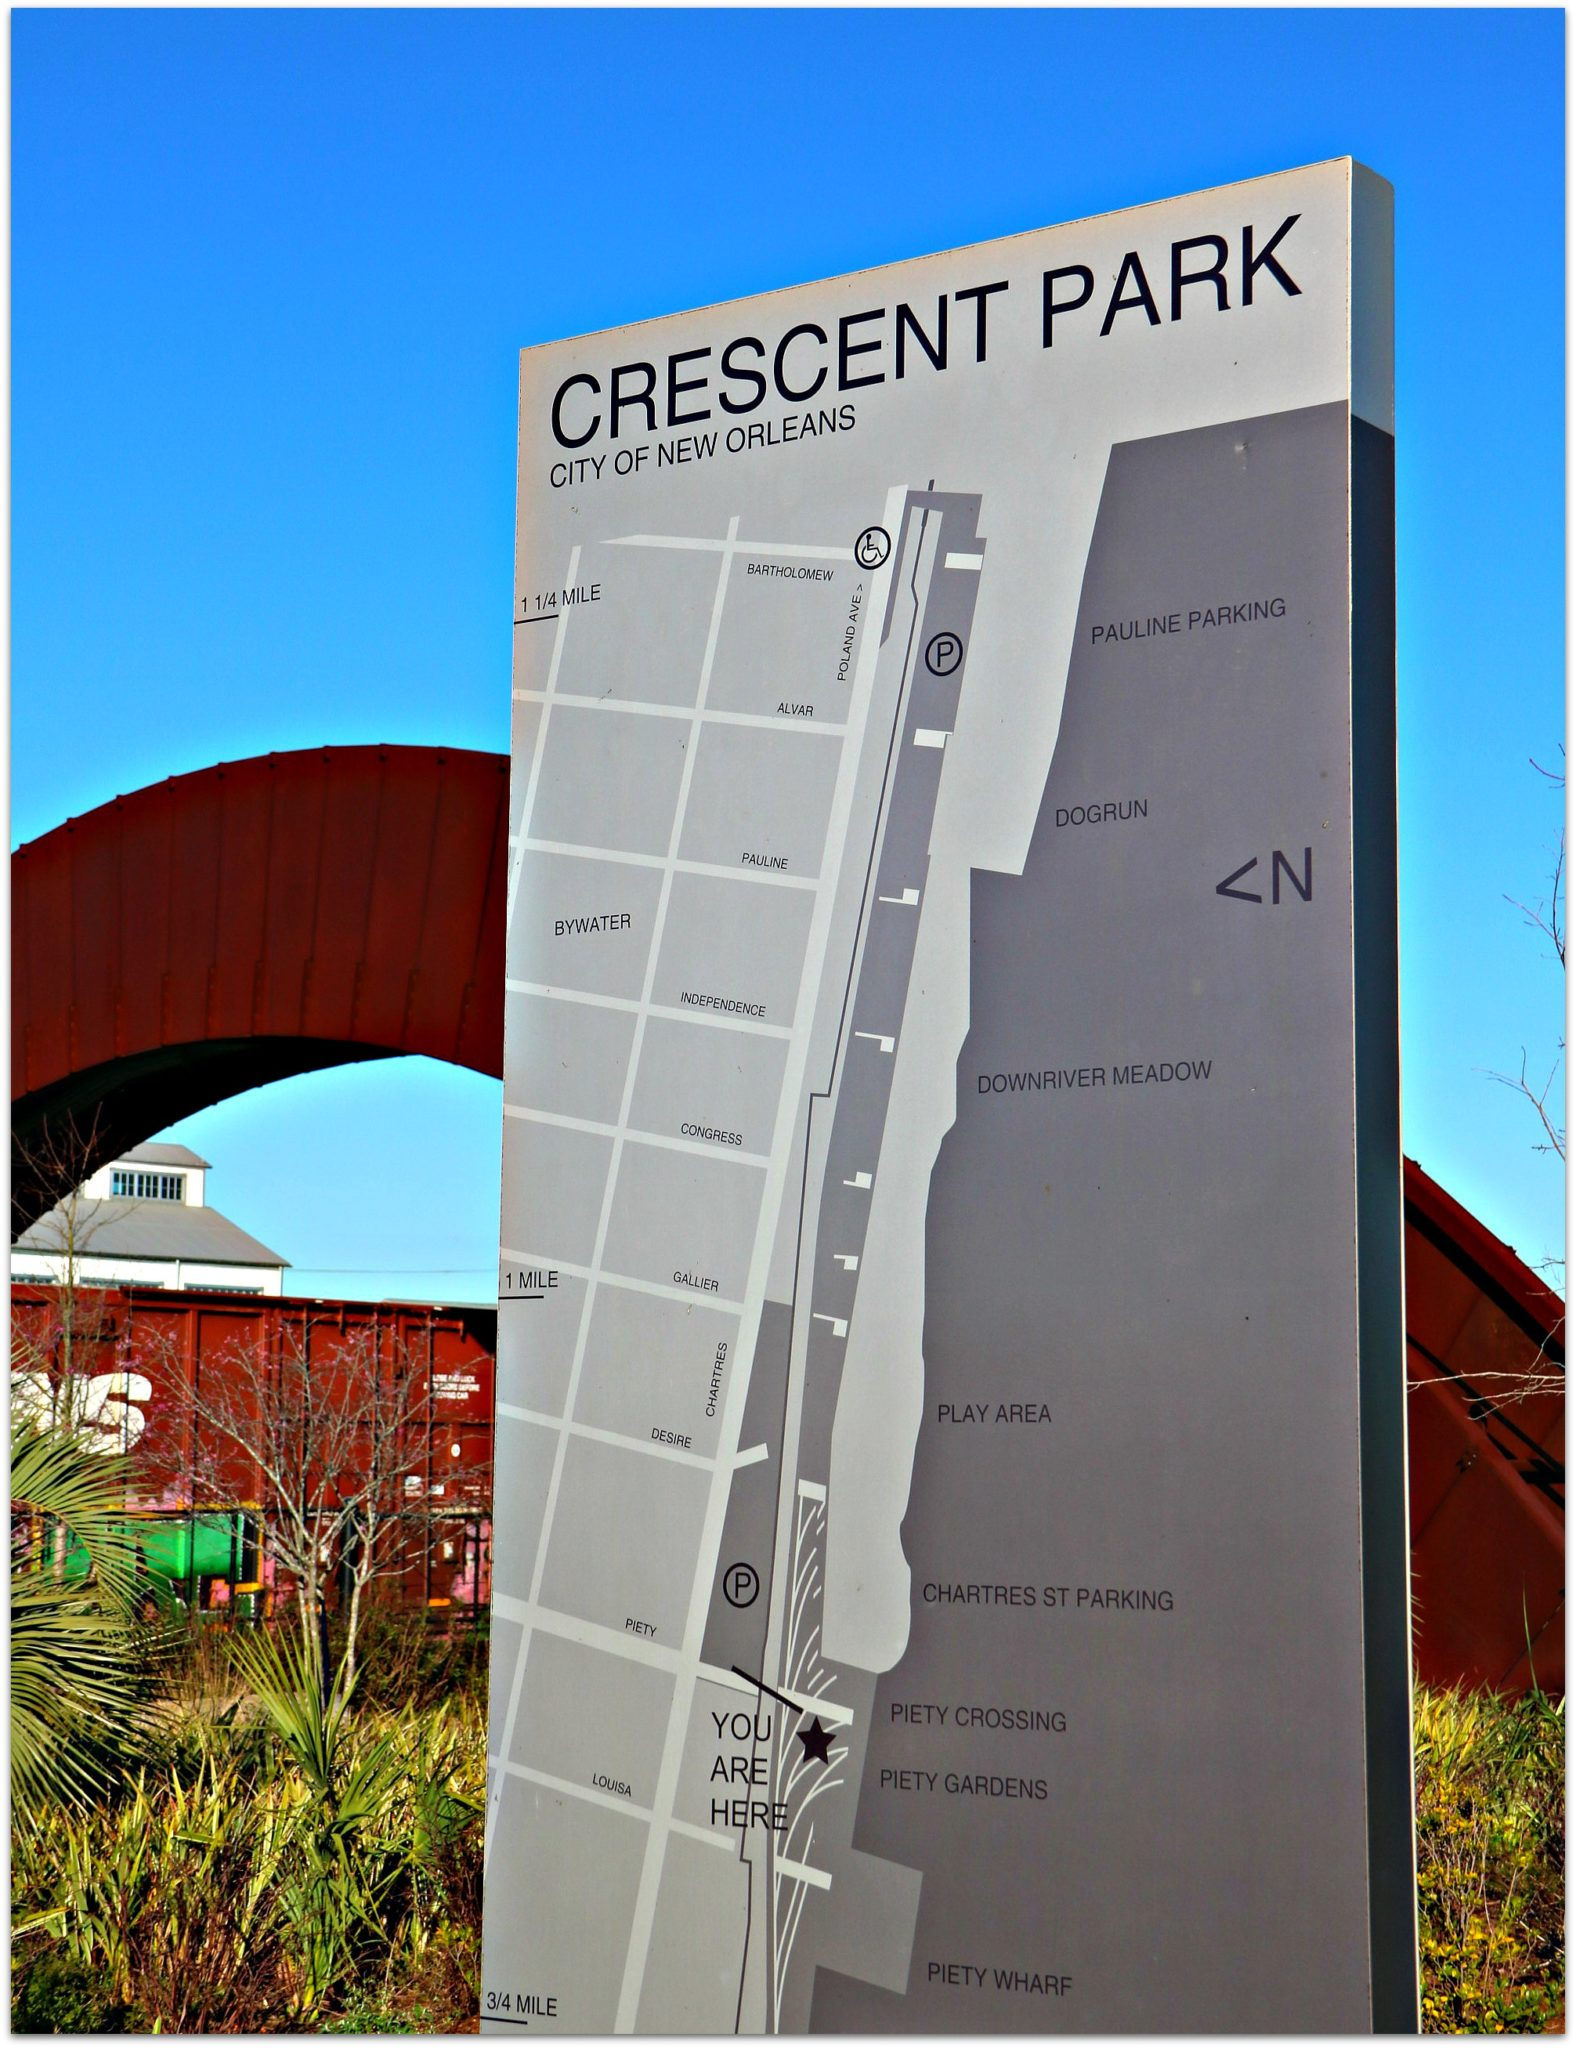 Map of the Crescent Park in Bywater